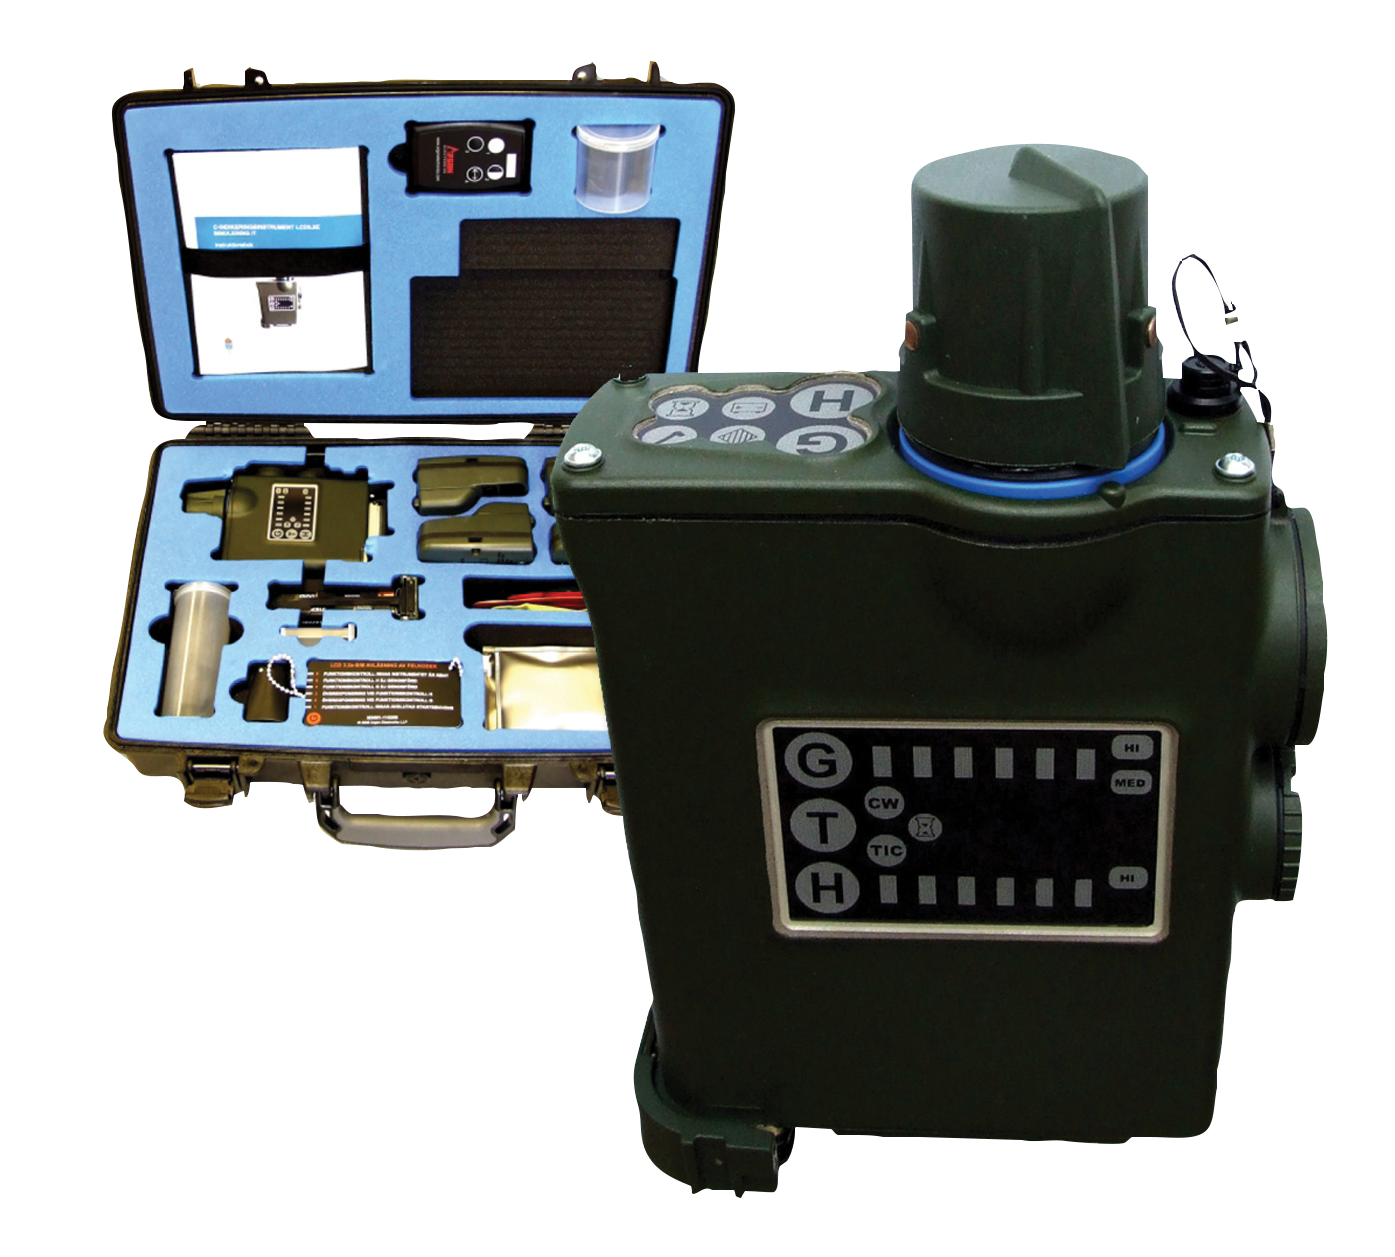 JCAD-M4 chemical hazard detection simulator